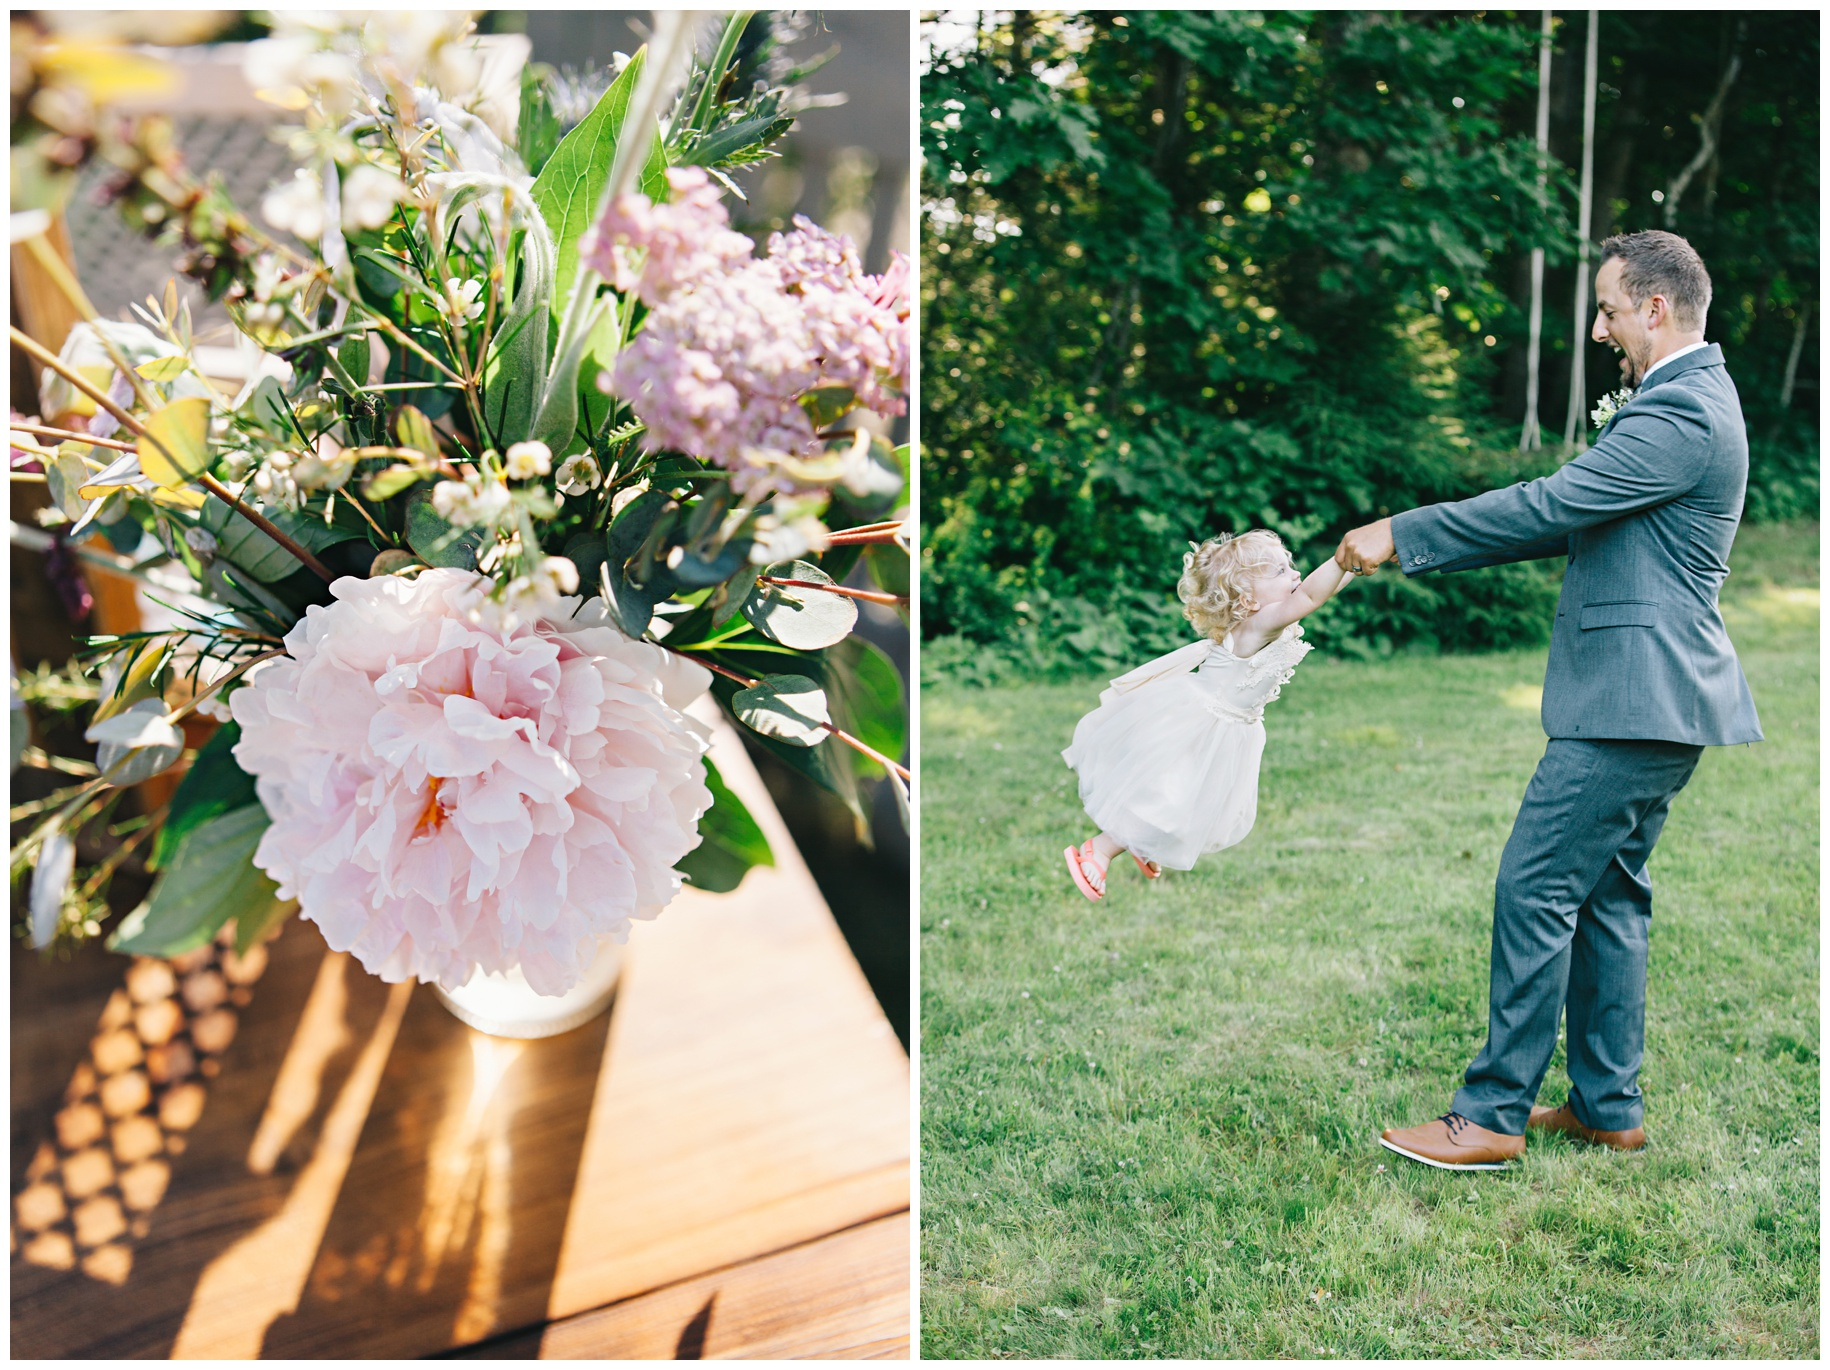 maineweddingphotographer_wiscassett_farm_barn_newengland-054